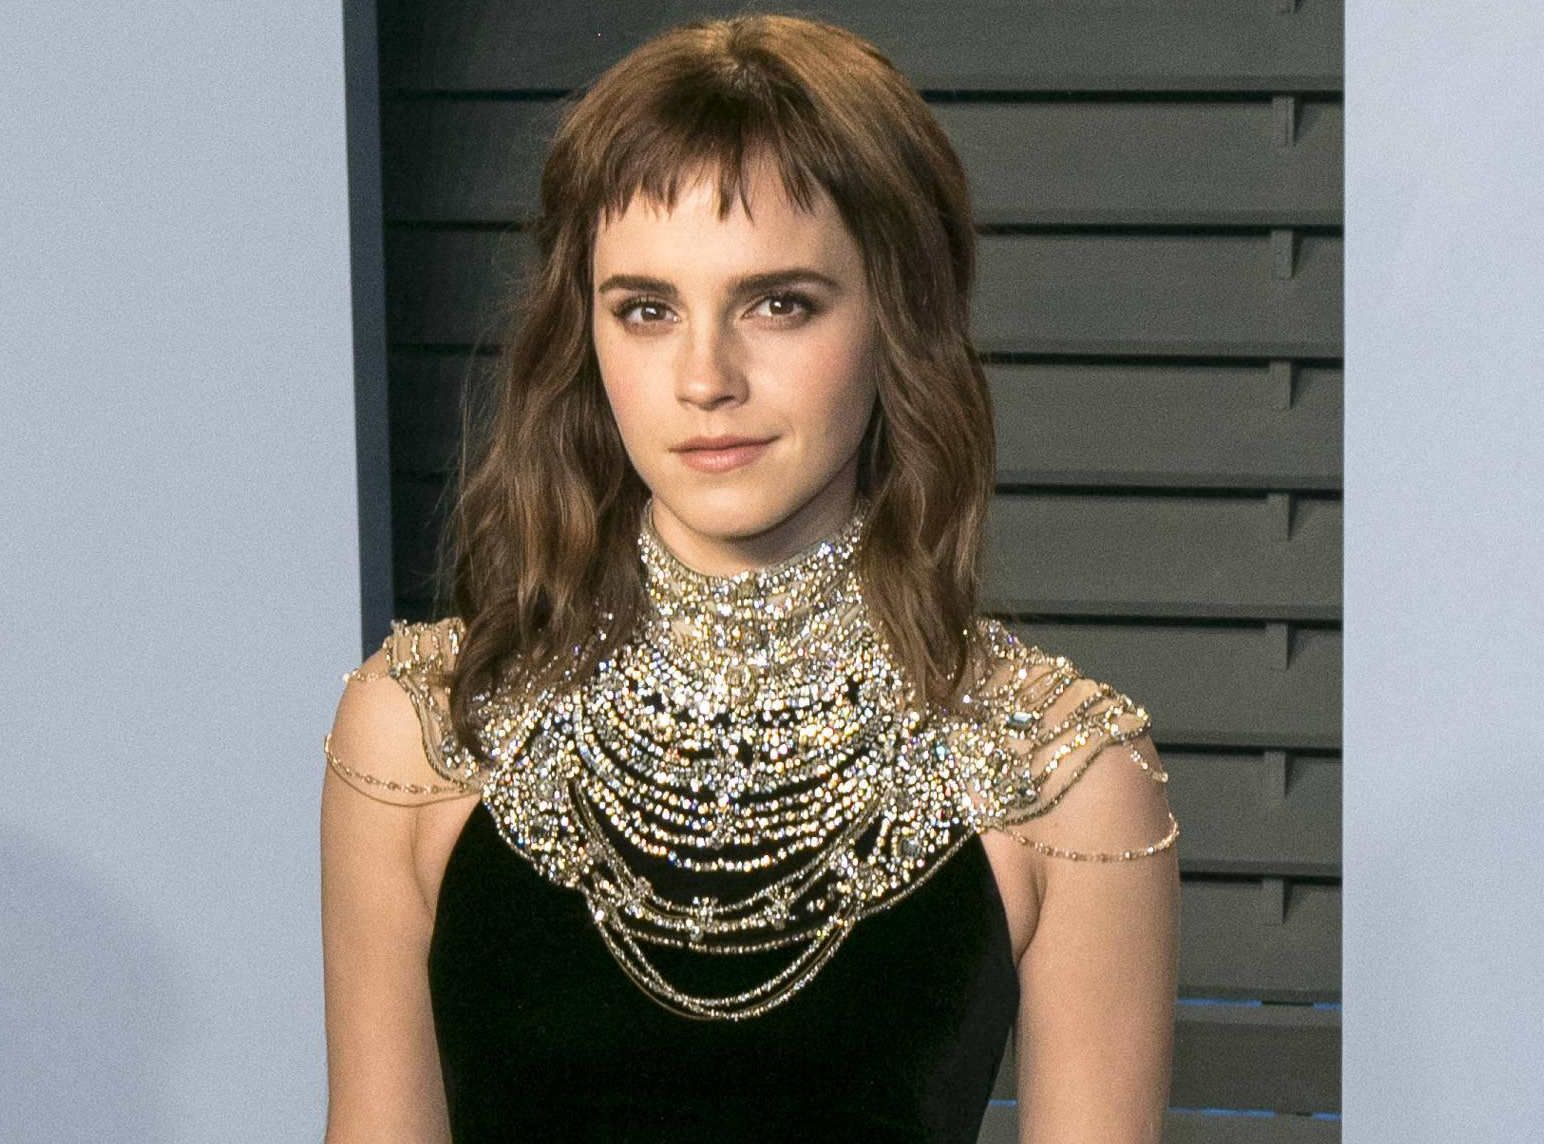 Oscars 2018 : Emma Watson présente son tatouage Time's Up mais...